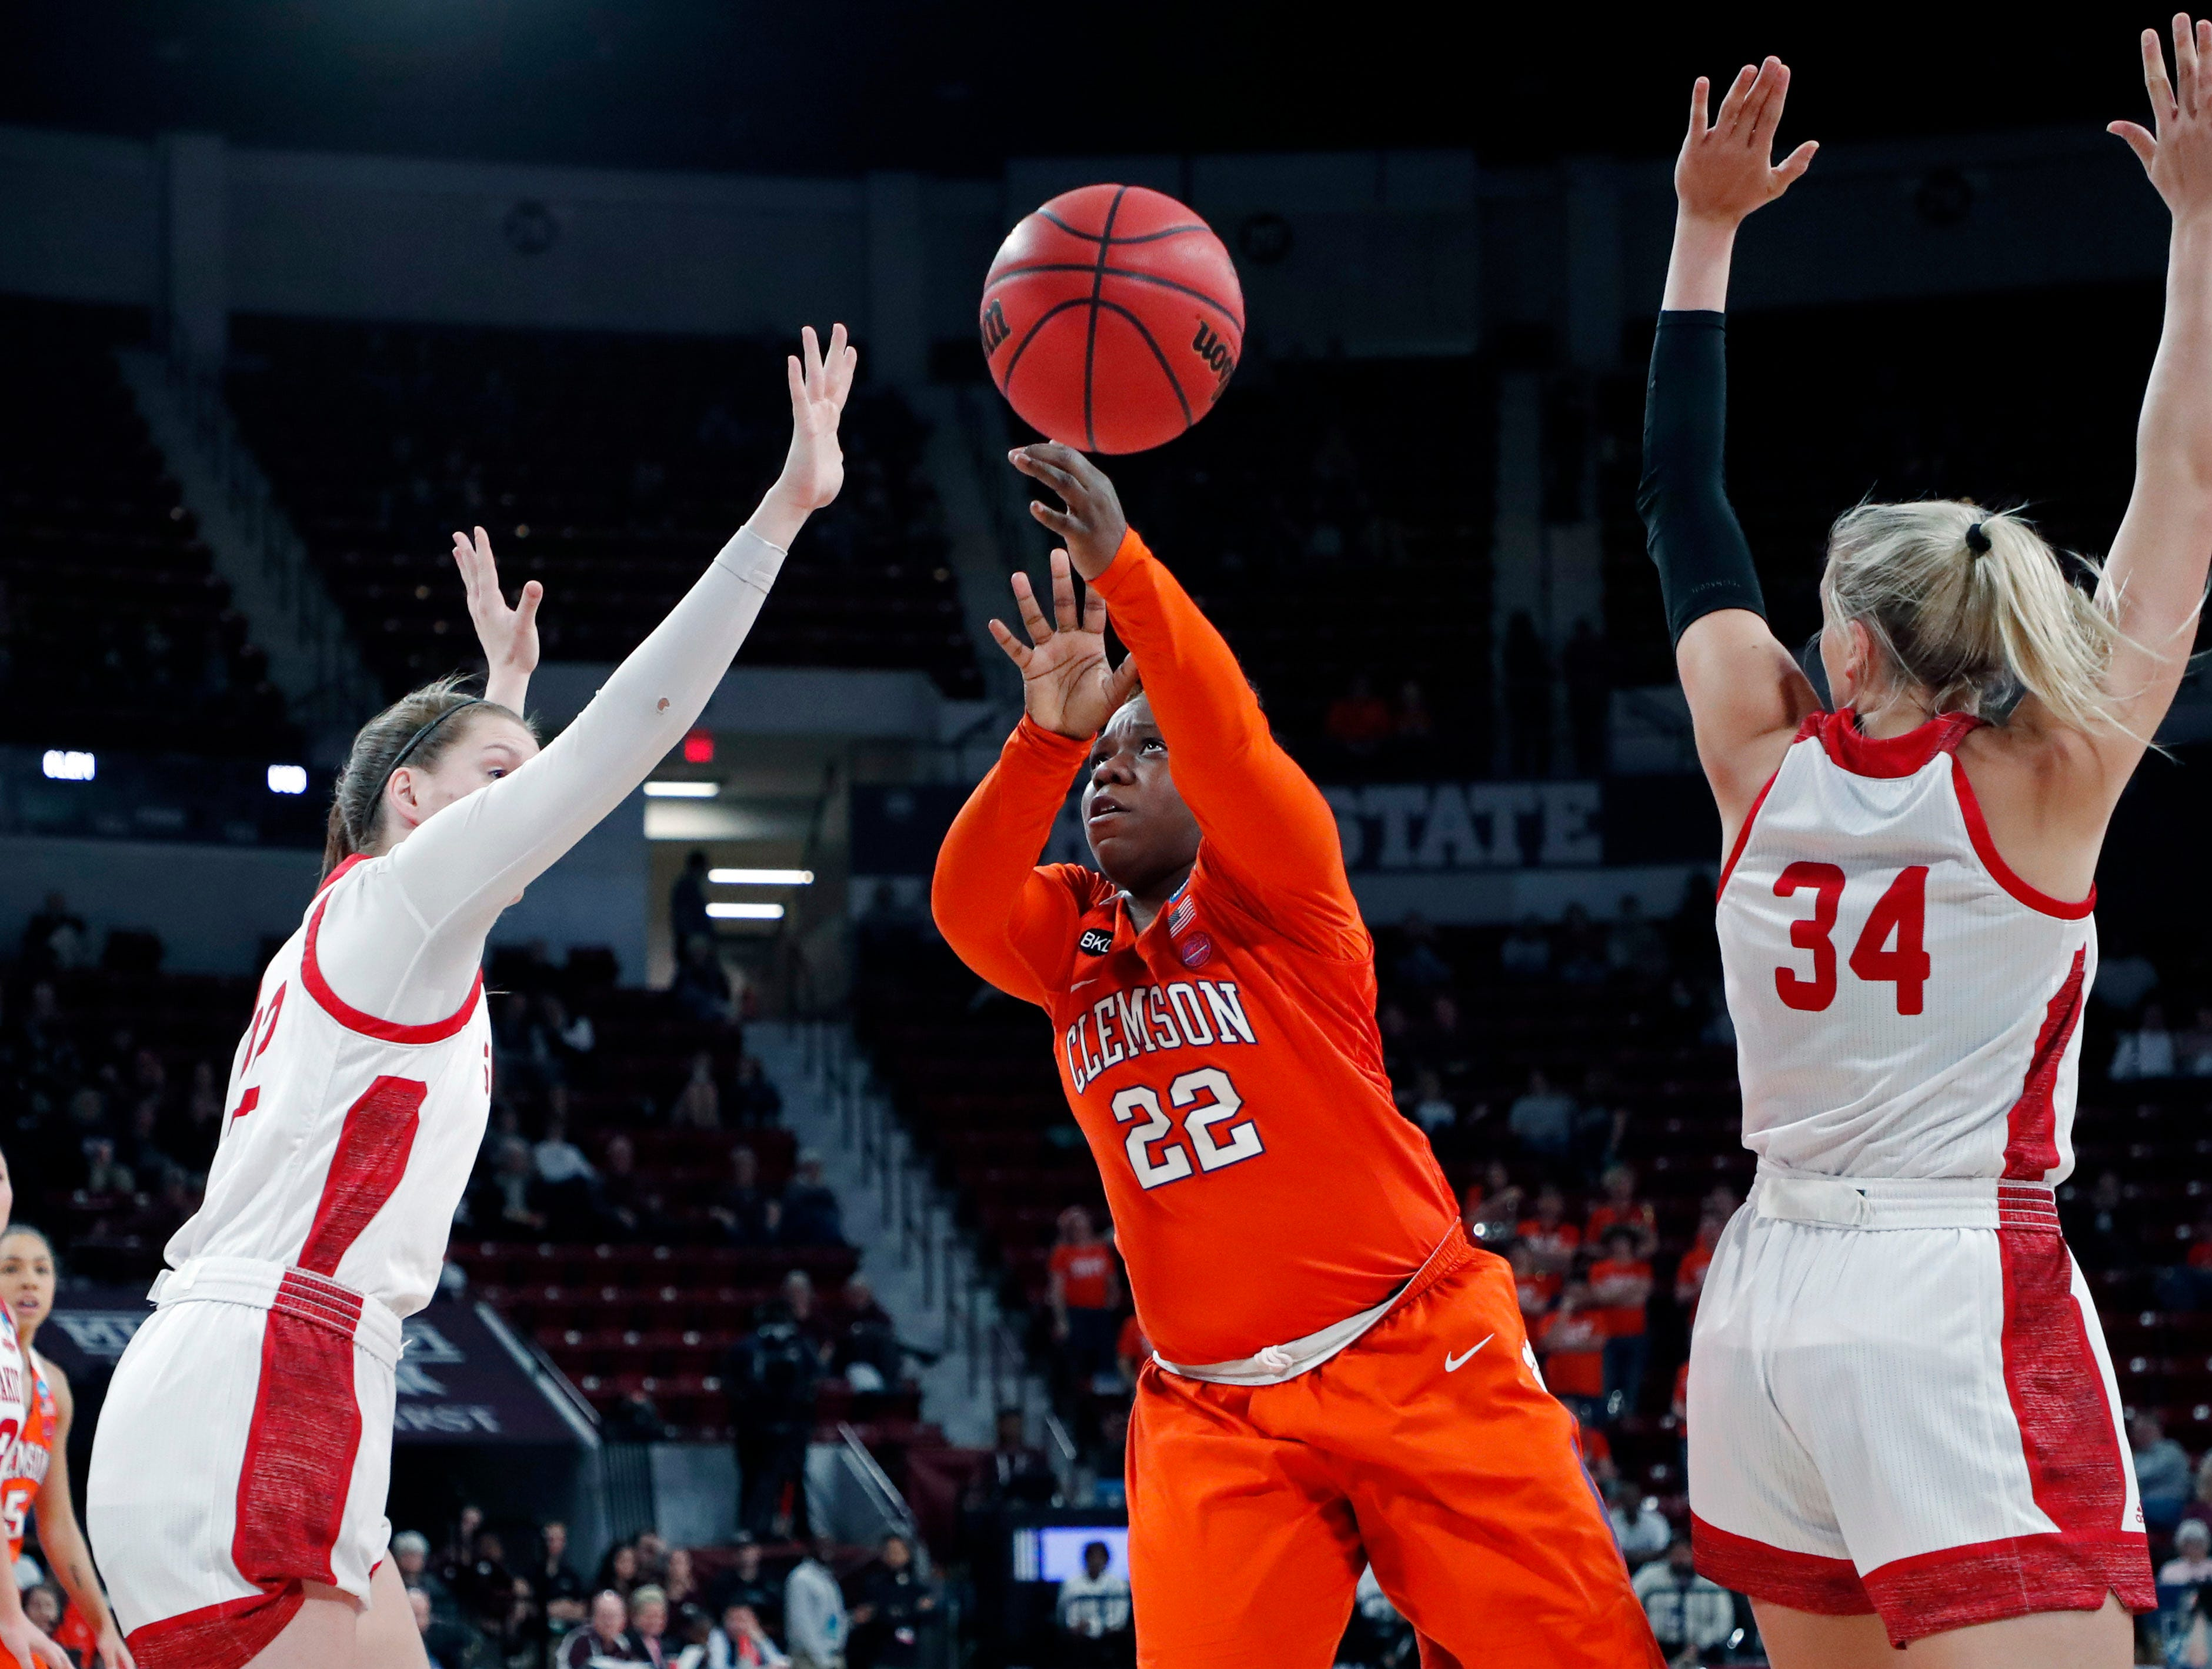 Clemson guard Keniece Purvis (22) attempts a shot between South Dakota guard Chloe Lamb (22) and center Hannah Sjerven (34) during a first round women's college basketball game in the NCAA Tournament in Starkville, Miss., Friday, March 22, 2019. (AP Photo/Rogelio V. Solis)